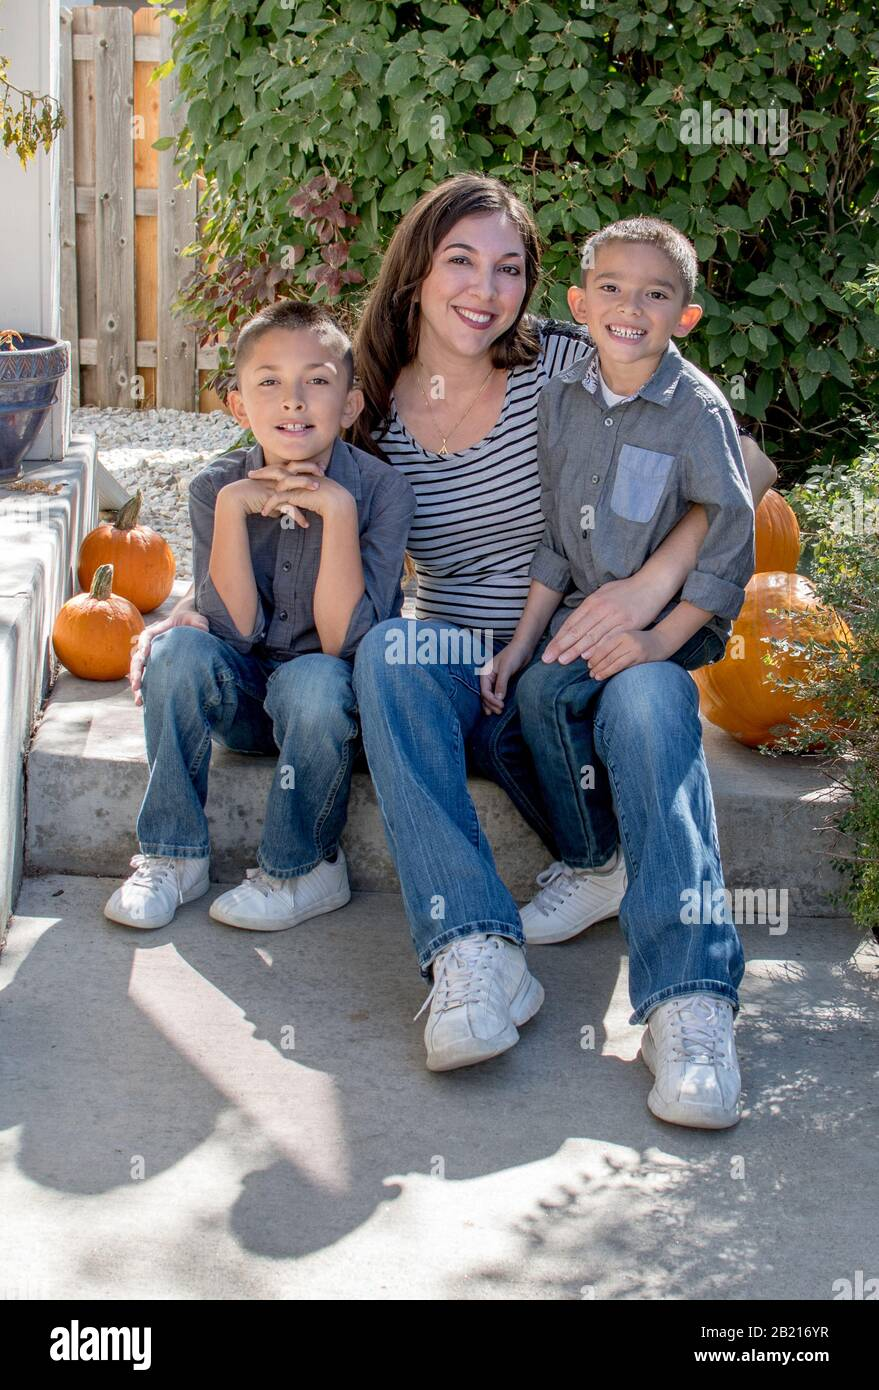 A single mom poses with her two boys in this beautiful Autumn outdoor portrait Stock Photo